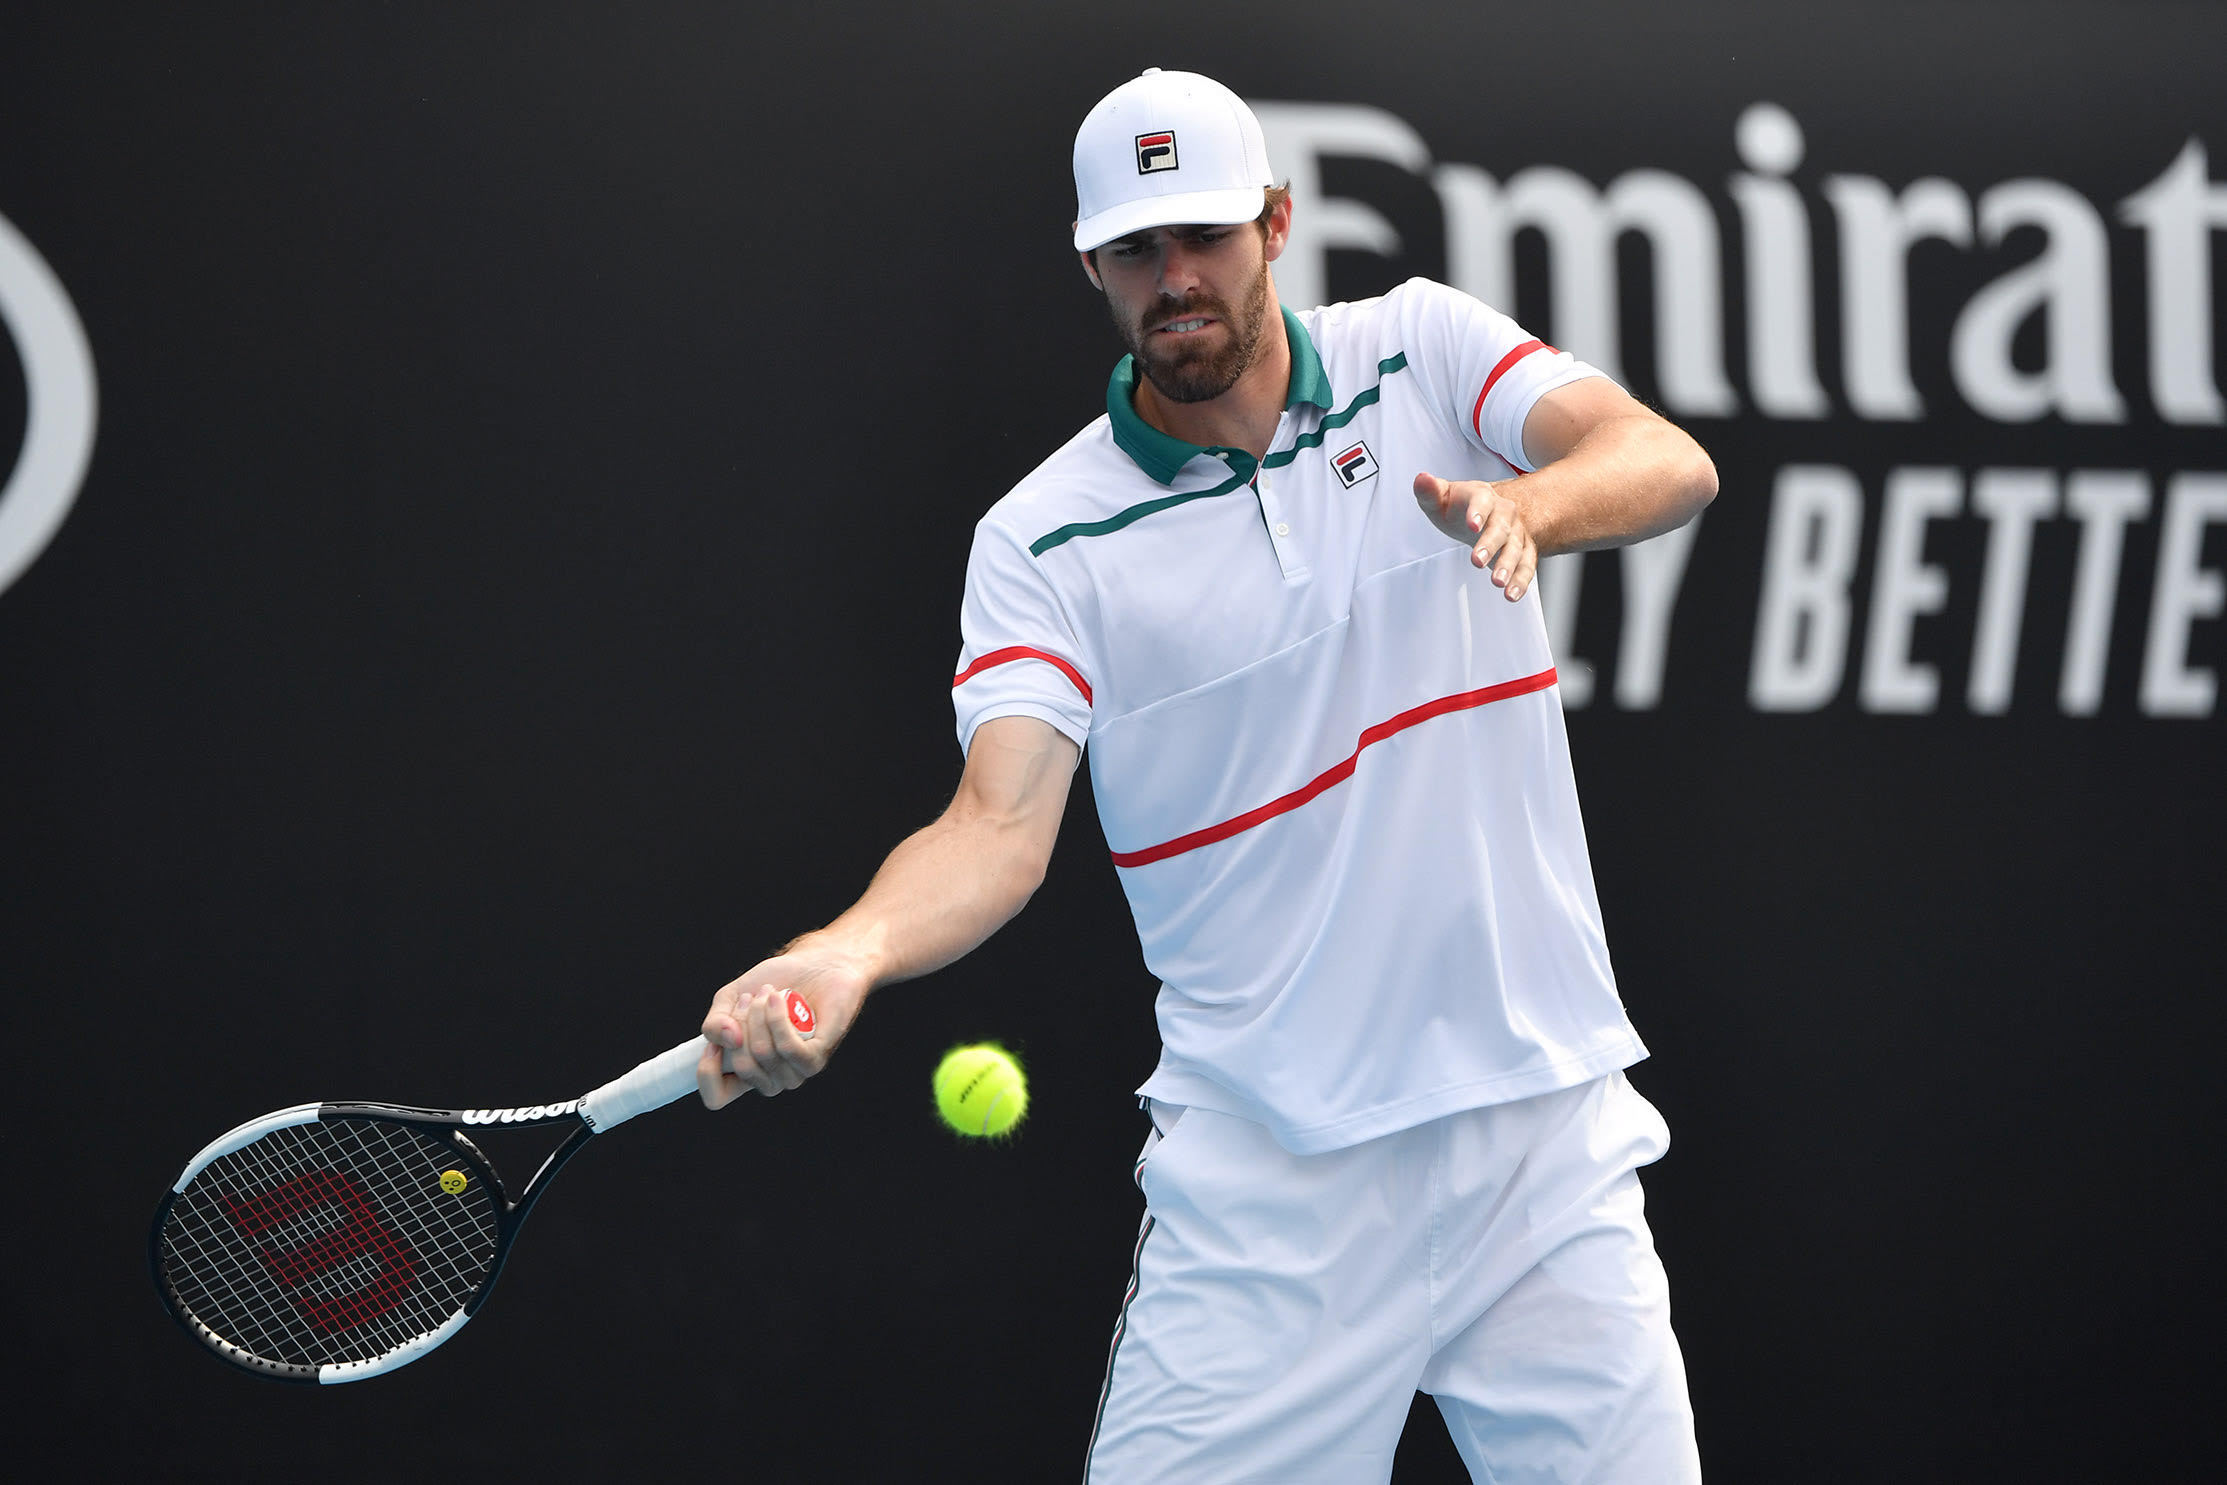 Opelka Switches To Fila From New